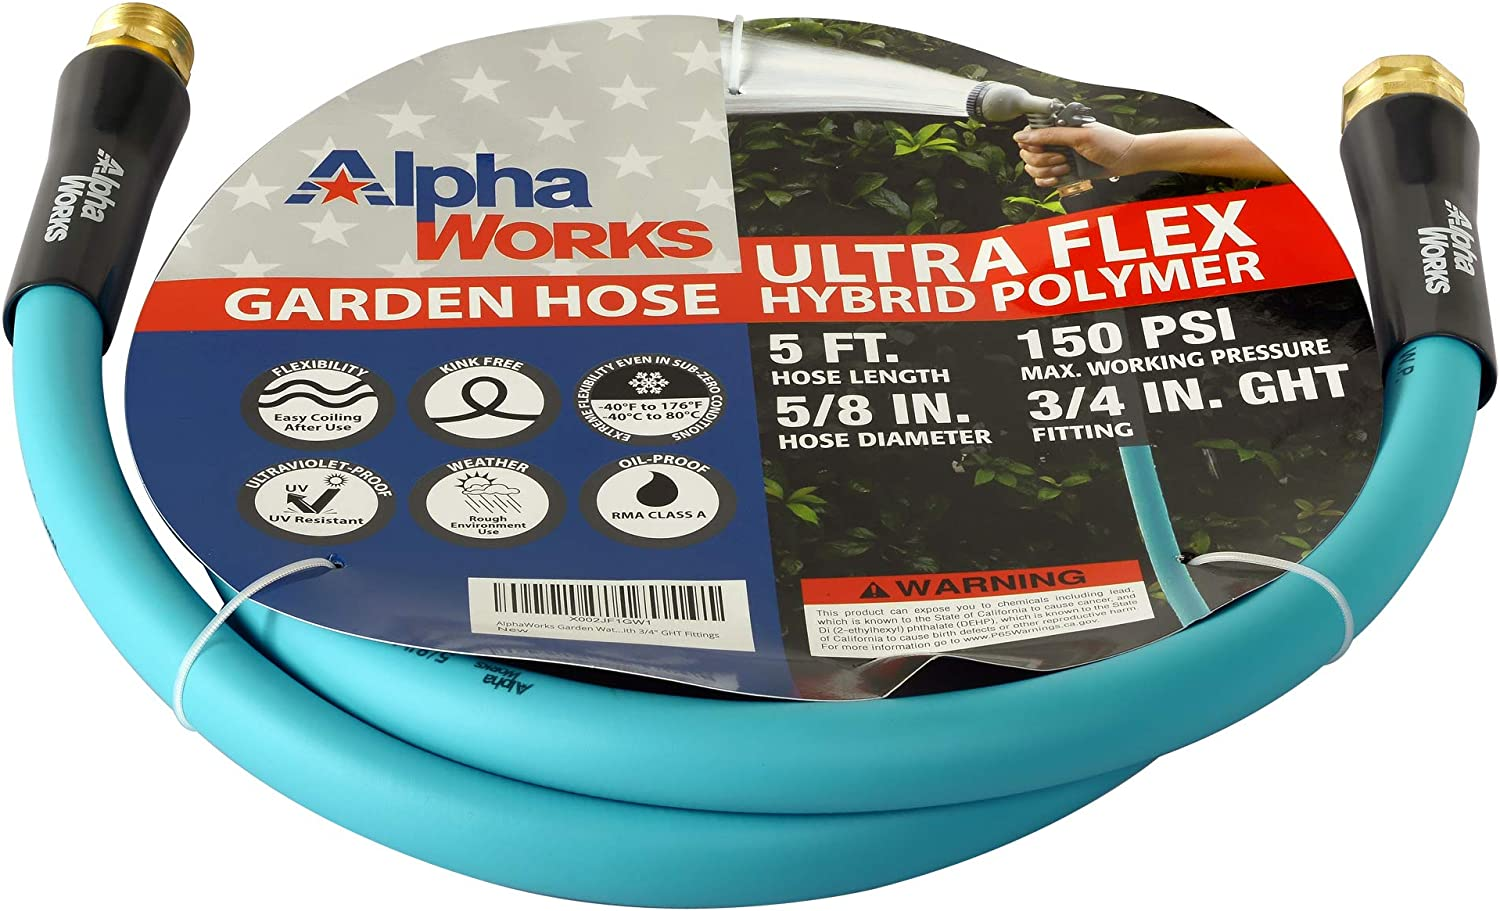 """AlphaWorks Garden Water Hose 5/8"""" Inch x 5' Foot Heavy Duty Premium Commercial Ultra Flex Hybrid Polymer Lead-in Hose Max Pressure 150 PSI/10 BAR with 3/4"""" GHT Fittings"""